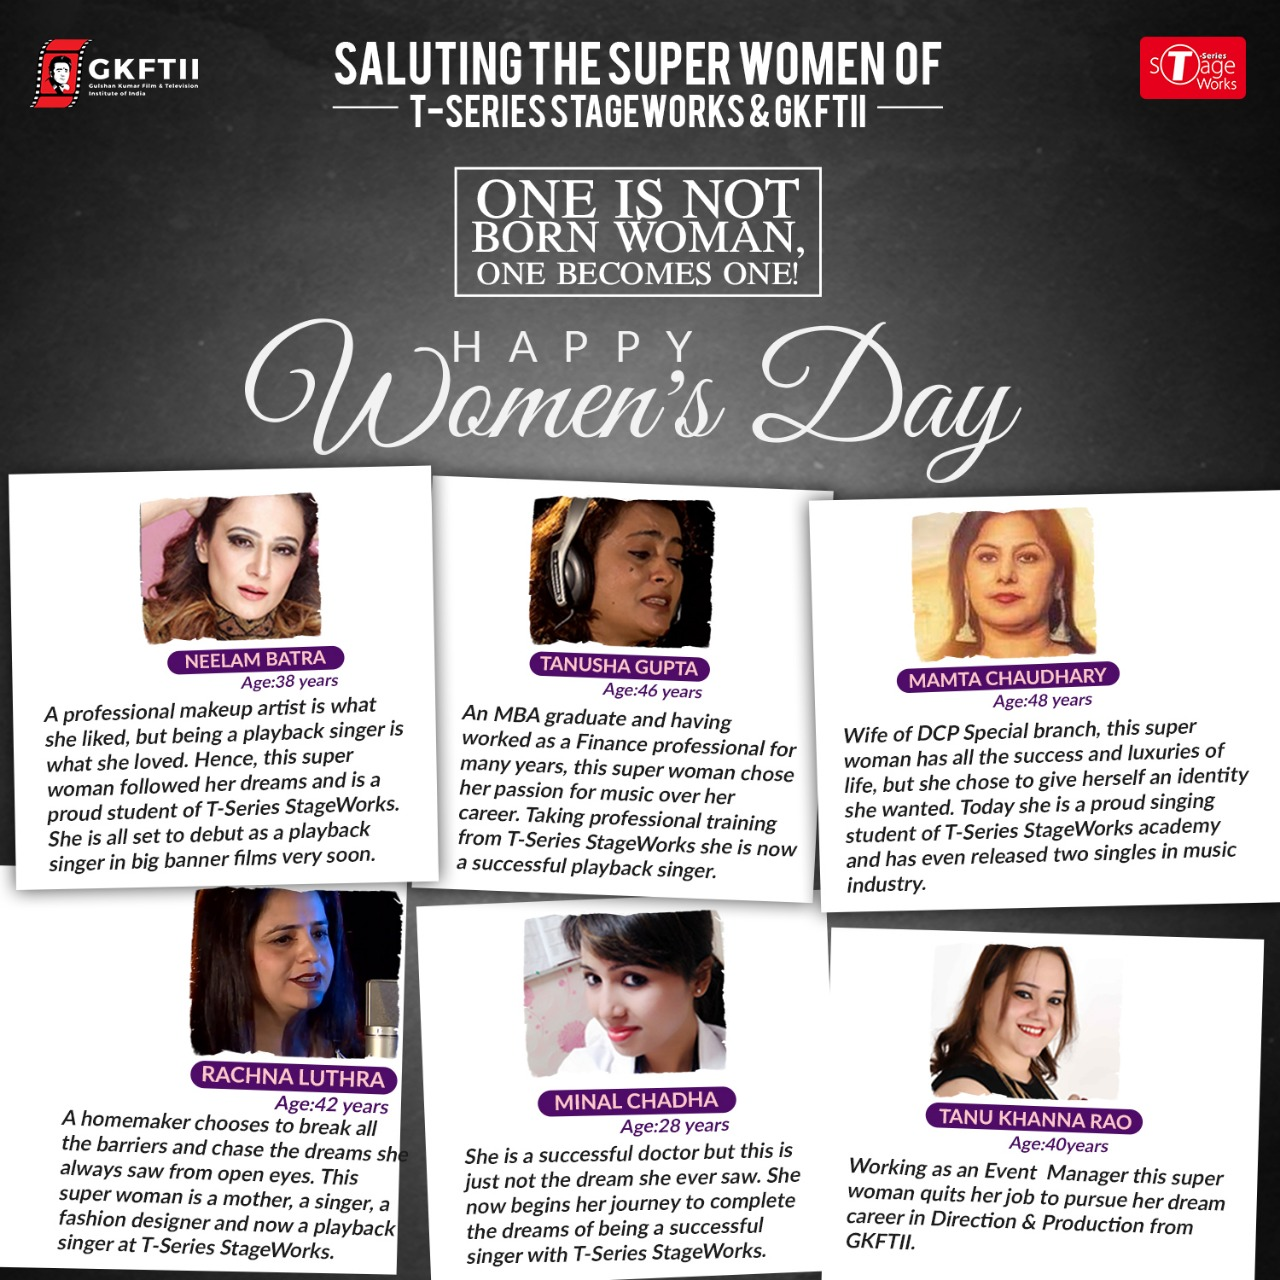 SALUTING THE SUPER WOMEN OF T-Series StageWorks Academy & GKFTII